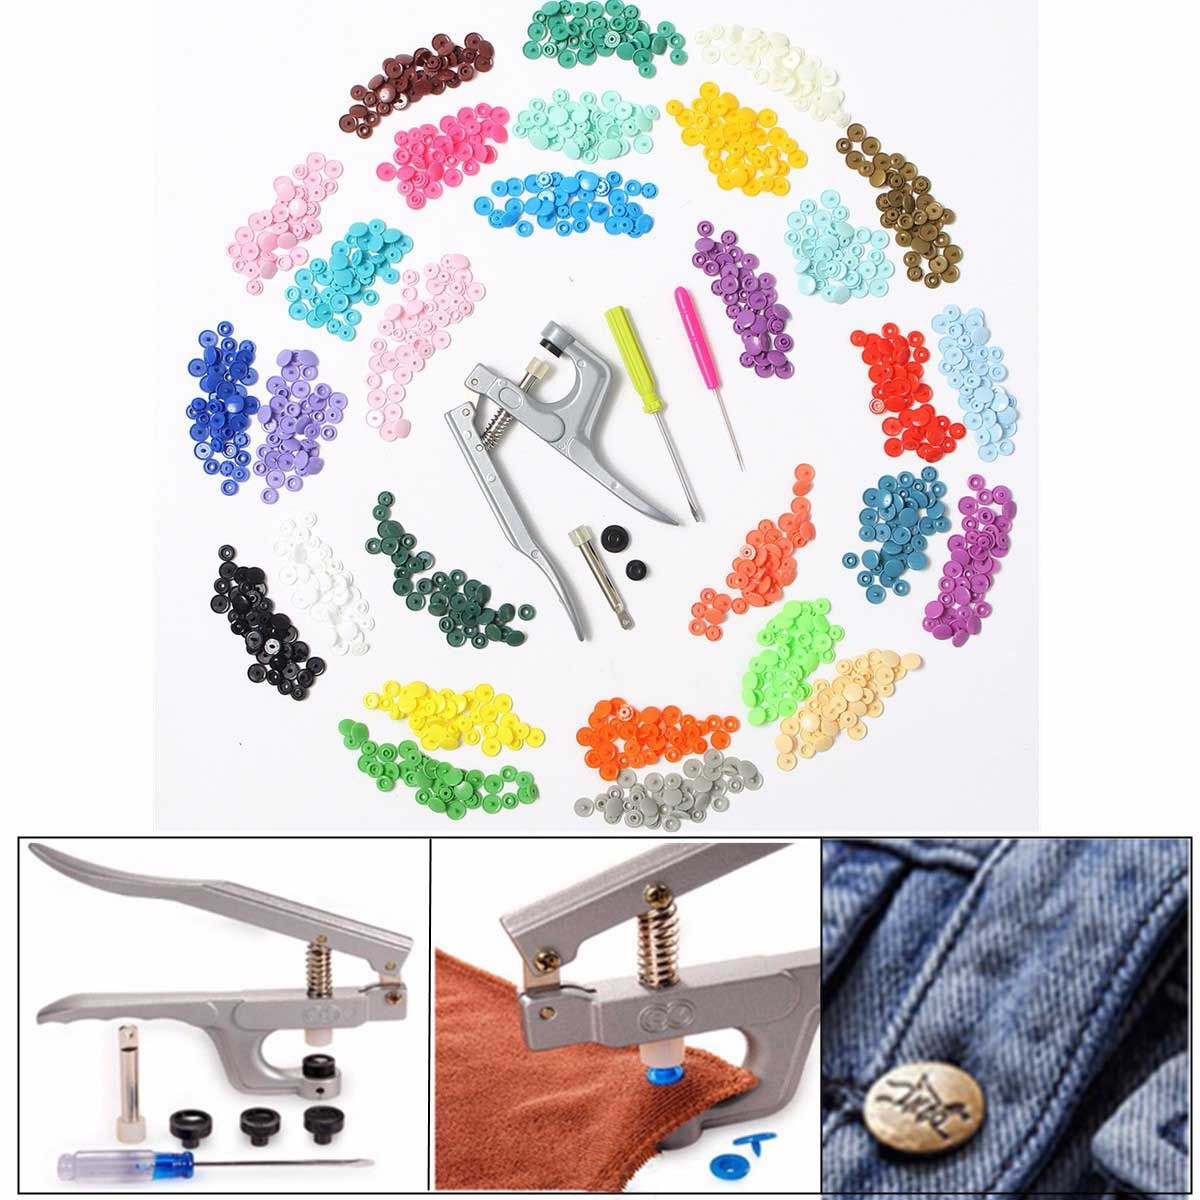 300 pieces 10 <font><b>Colors</b></font> KAM Snaps T5 Snap Starter Plastic Poppers Fasteners +1 Pliers for Sewing Handmade DIY Cloth Suplies